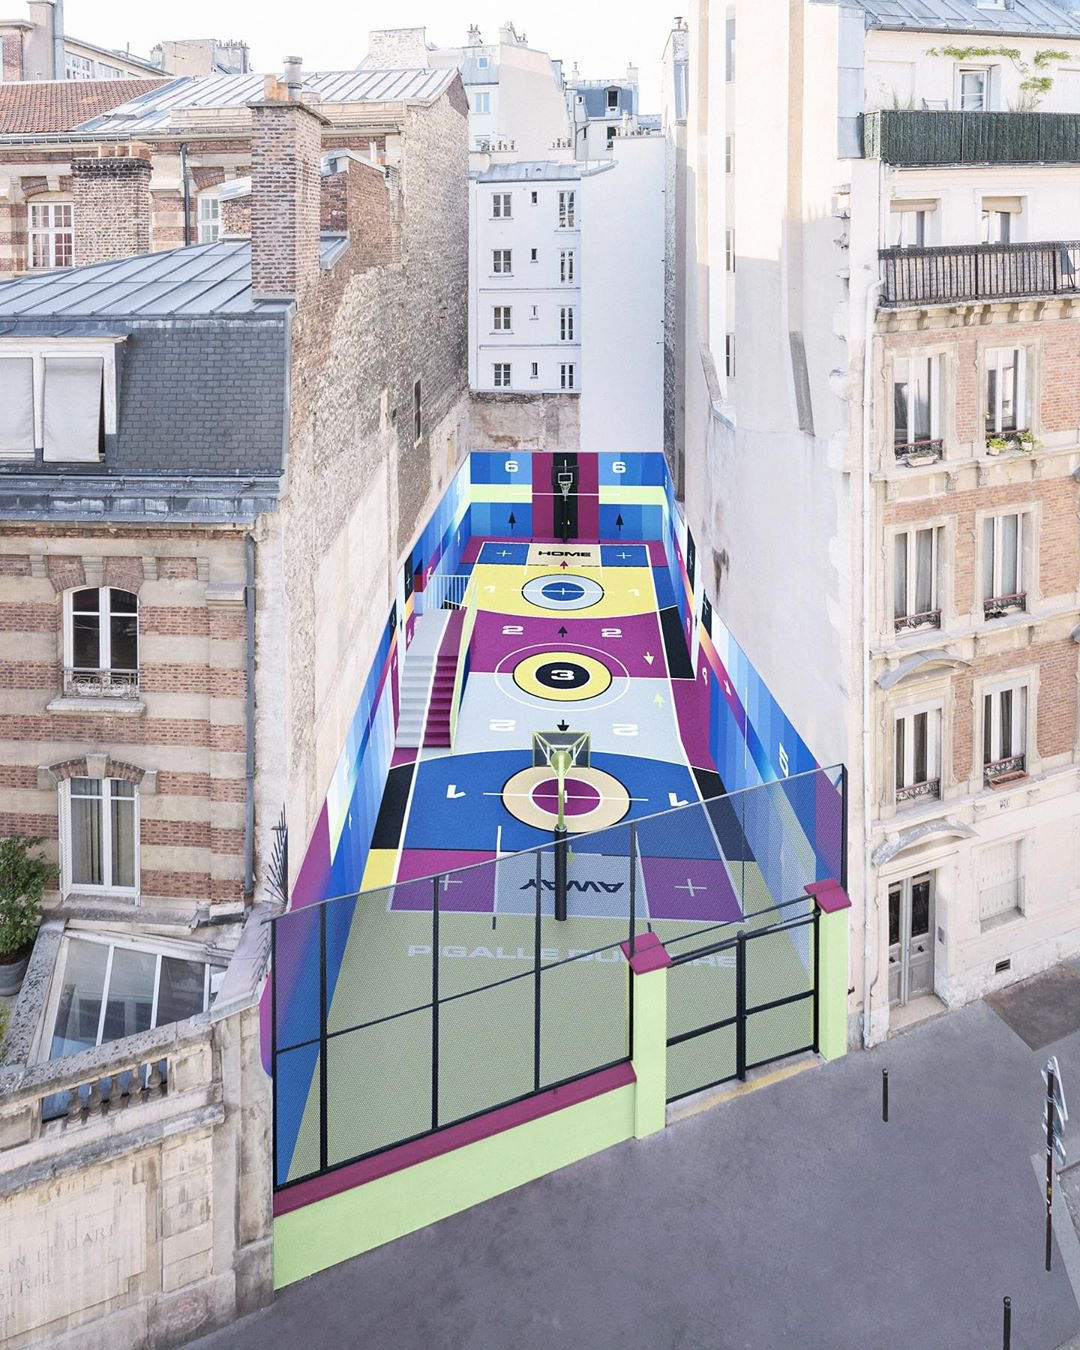 Pigalle Duperré basketball court 2020 unveiled by Nike ...